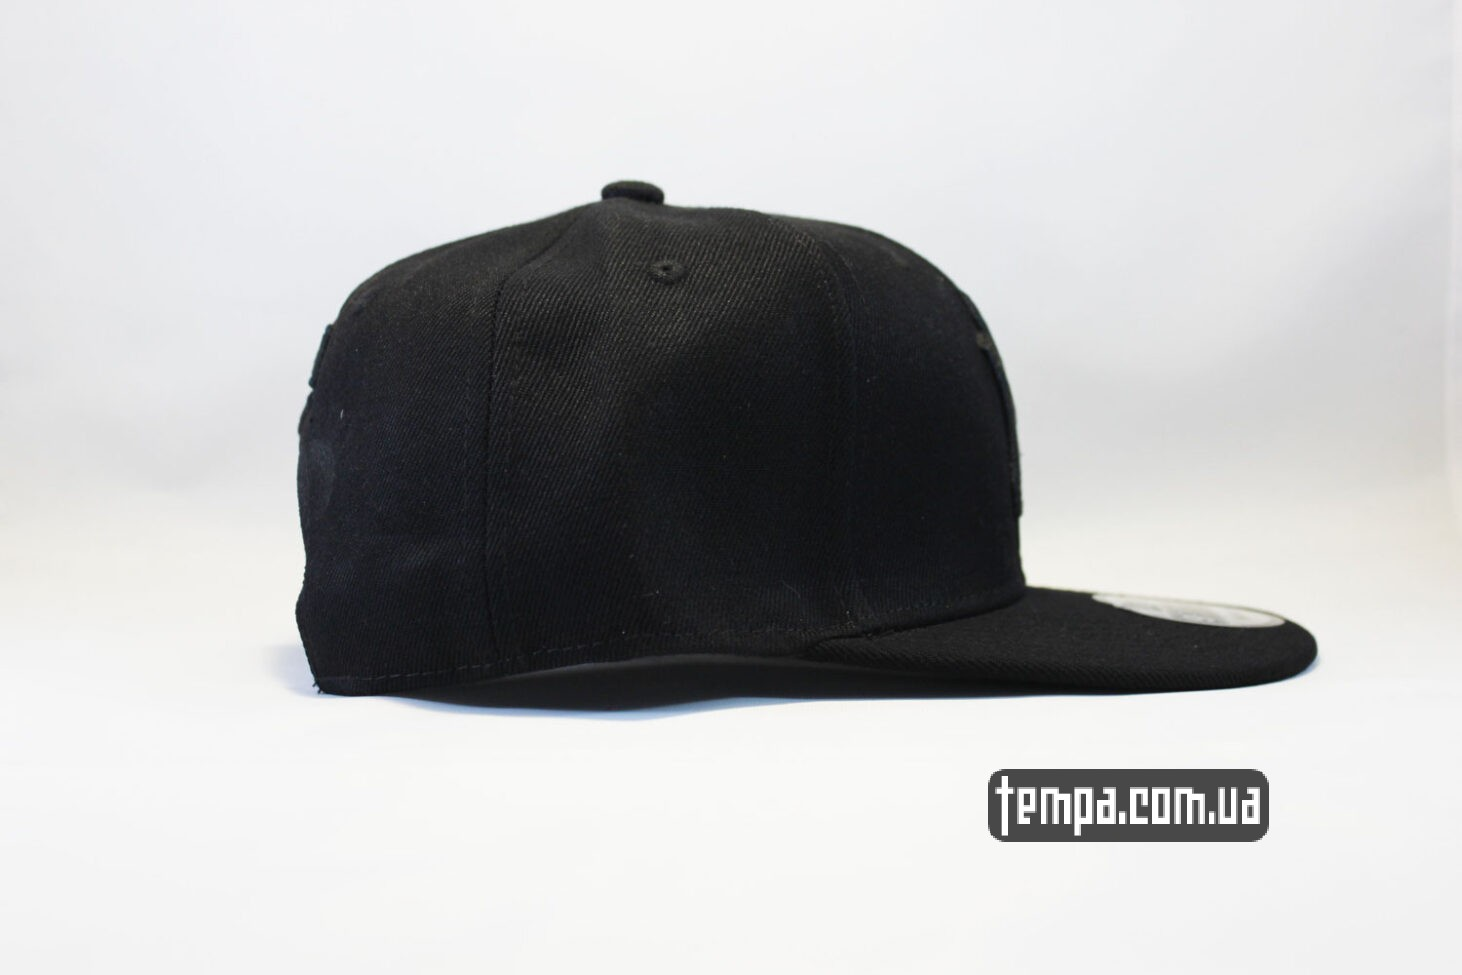 black on black  бейсболка кепка Snapback New Era NYC New York черная на черном black